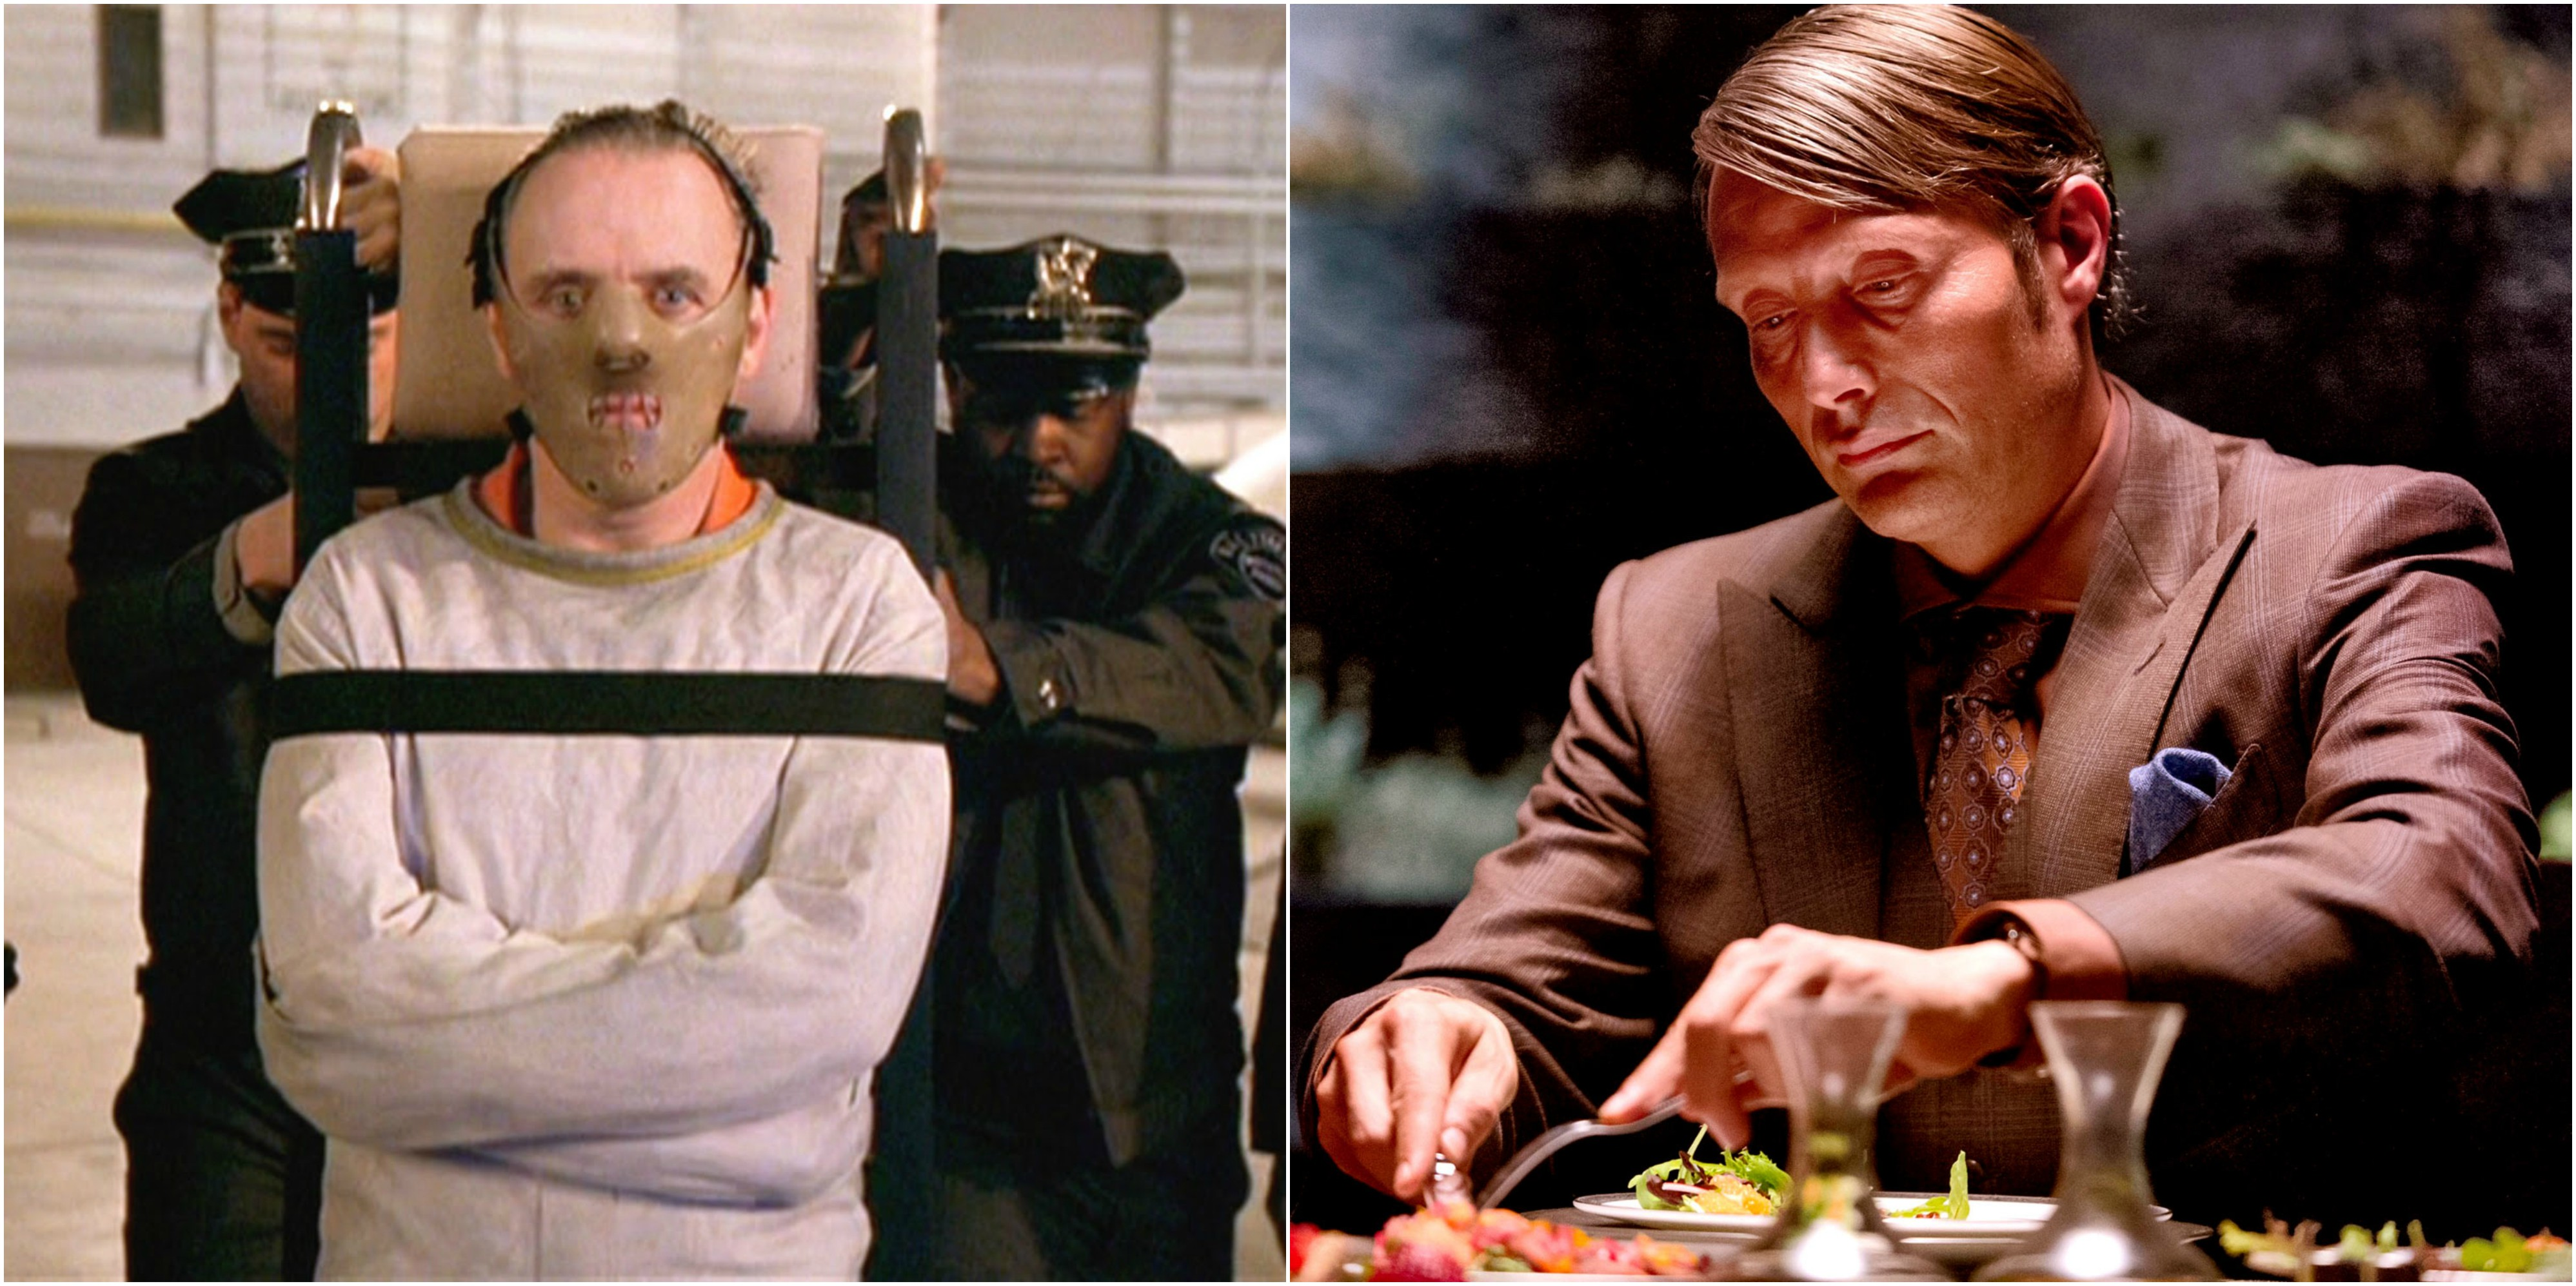 15 True Accounts Of Modern-Day Cannibals